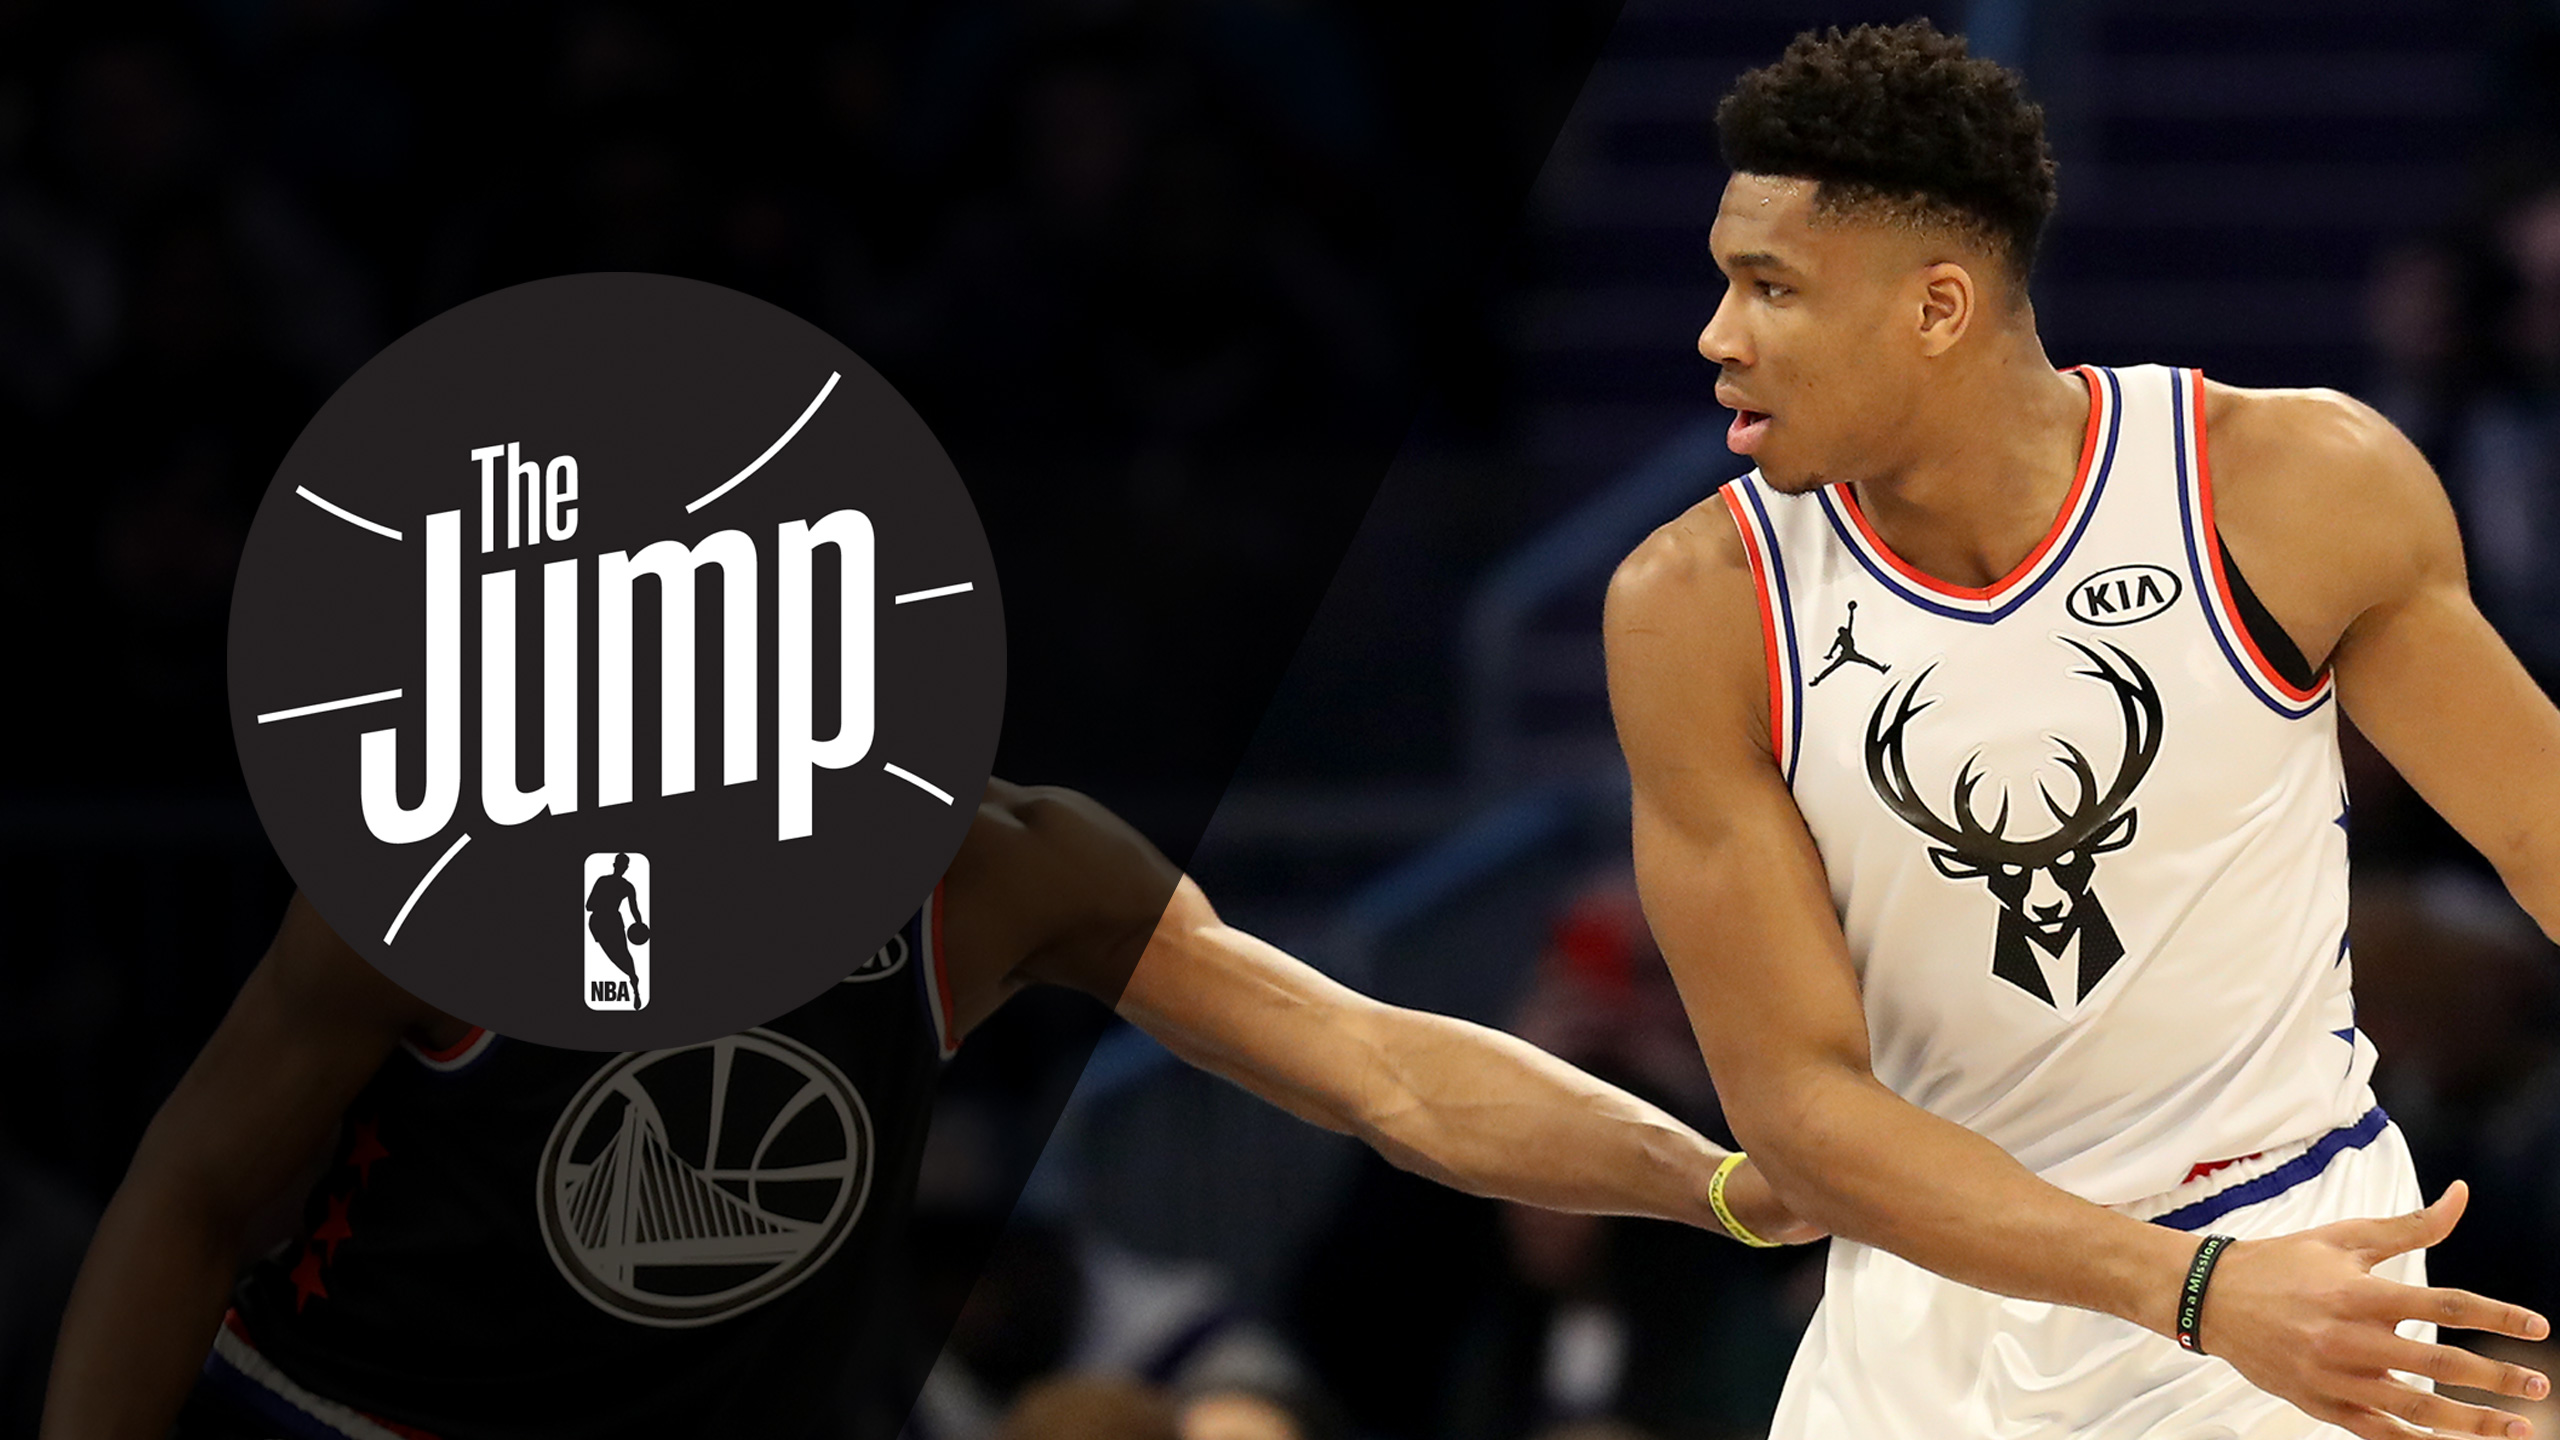 Thu, 2/21 - NBA: The Jump